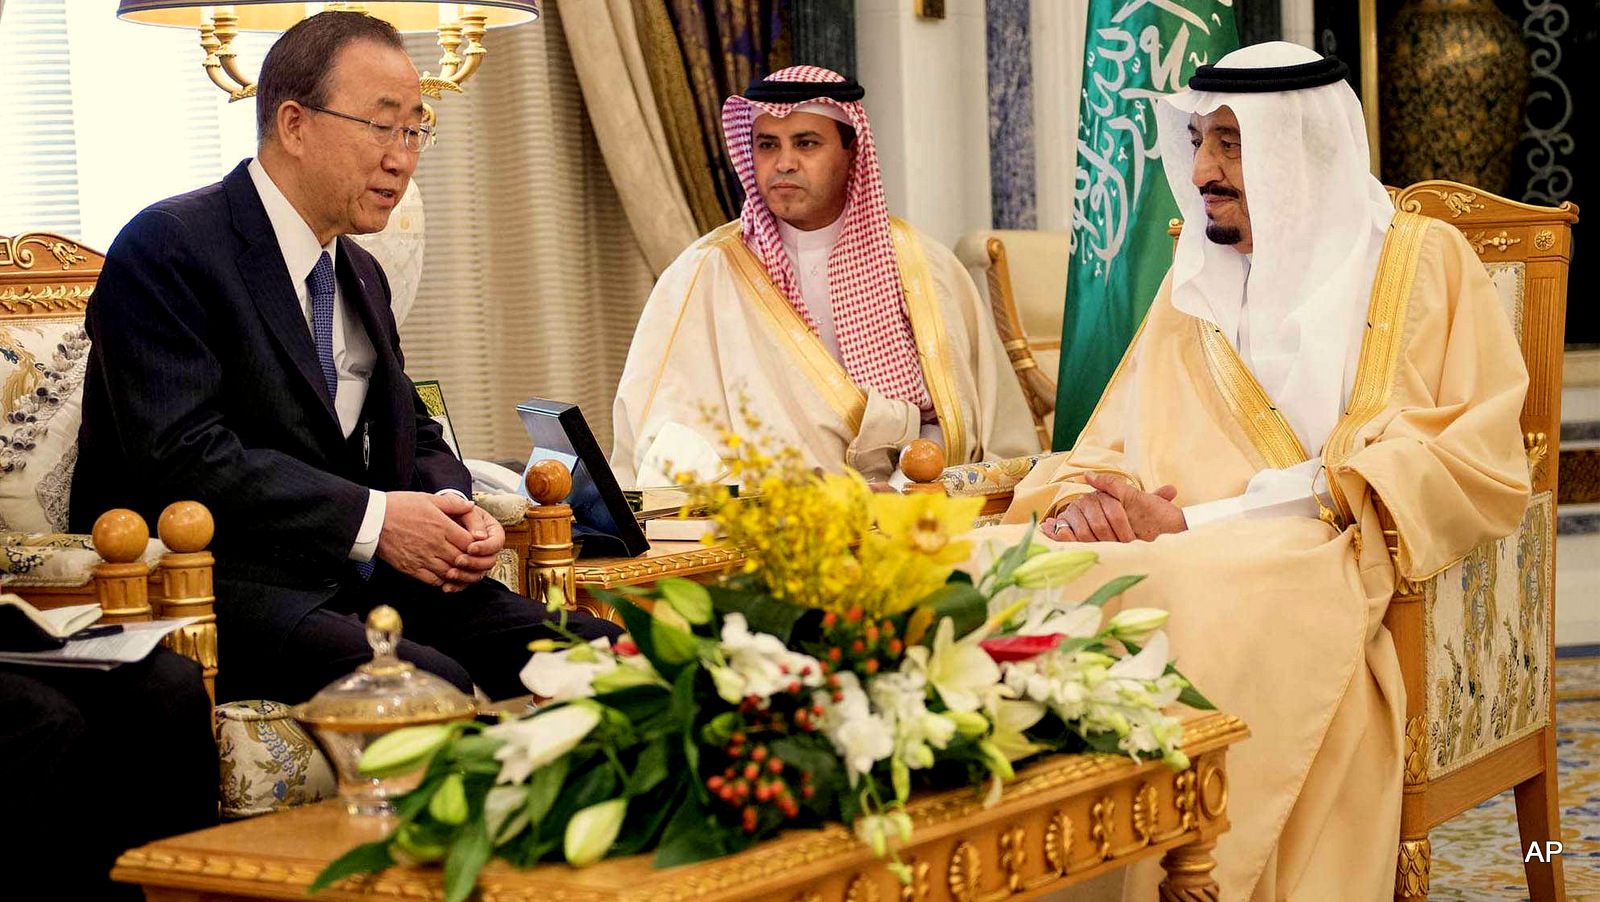 United Nations Secretary General Ban Ki-Moon, left, meets with King Salman bin Abdul-Aziz Al Saud, right